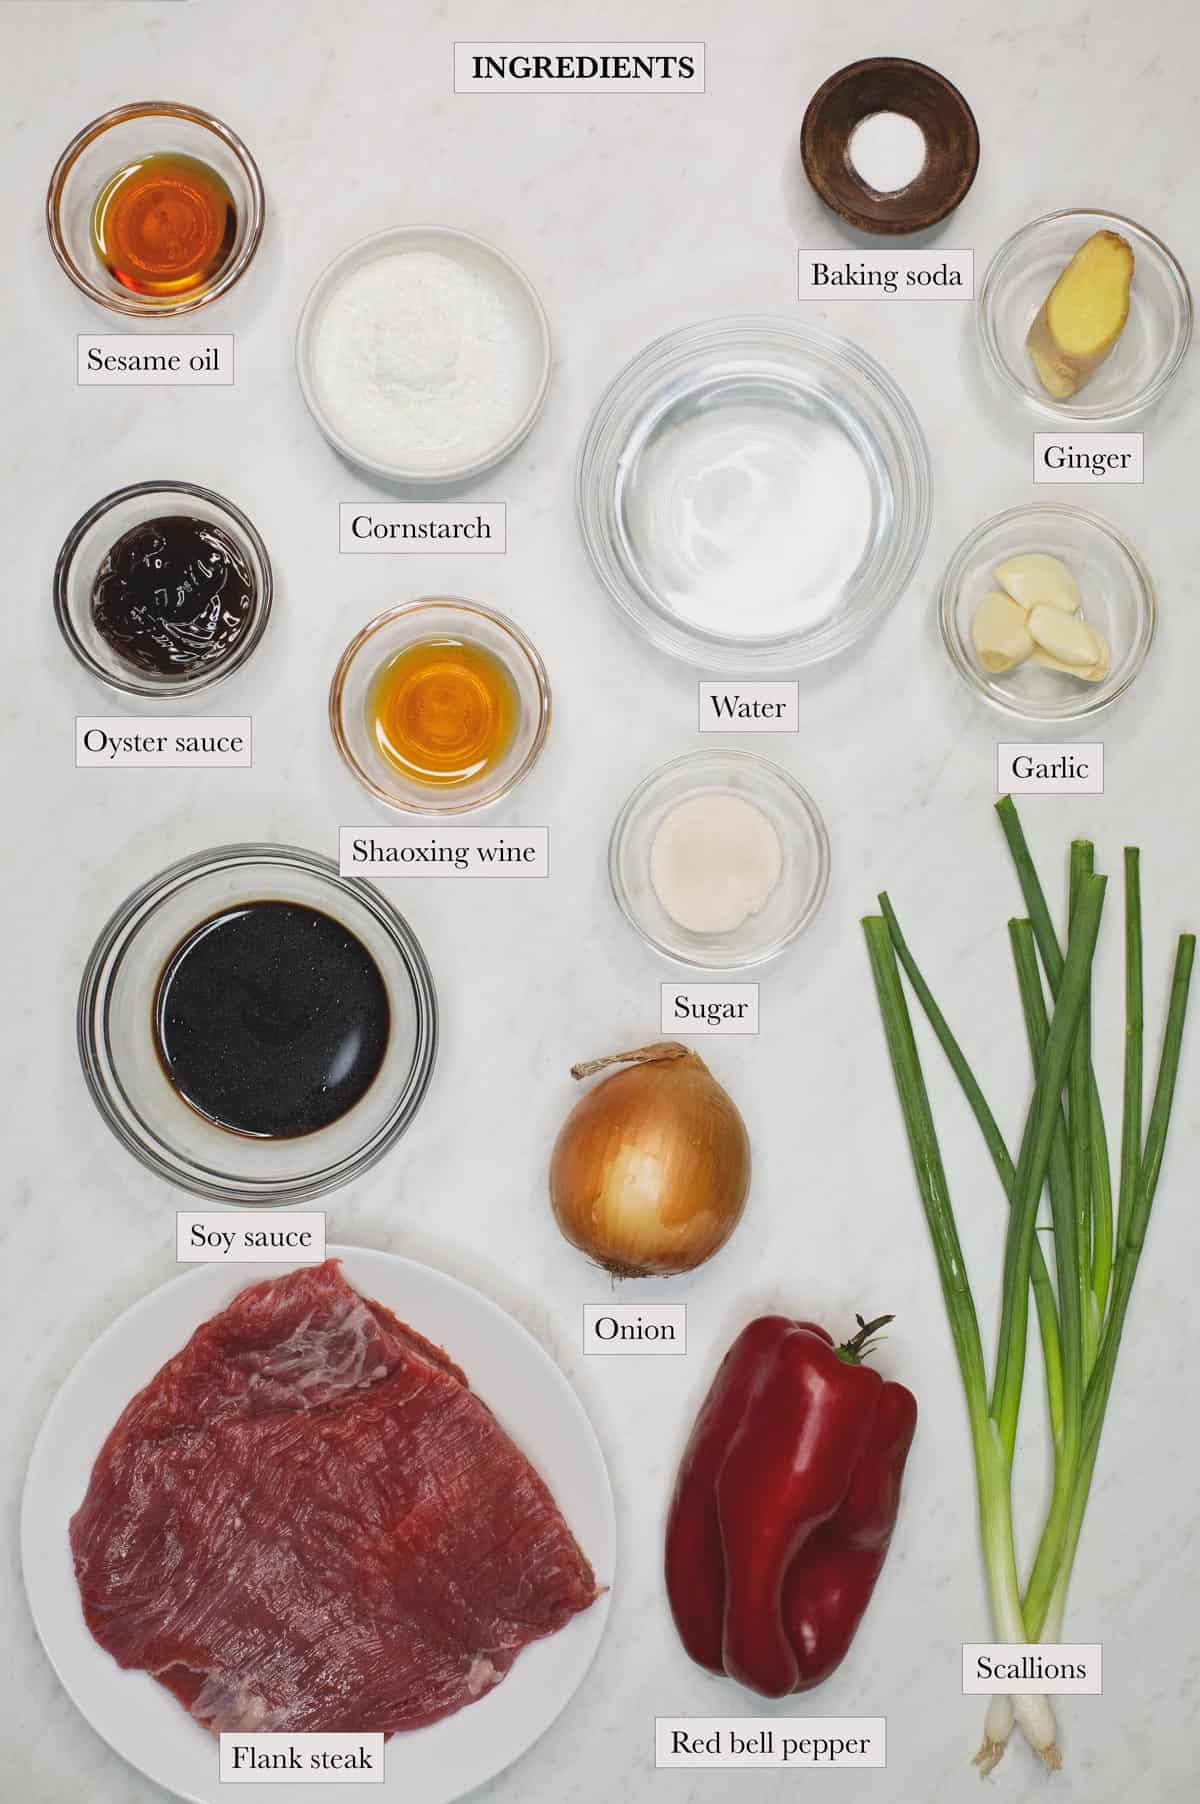 Ingredients include soy sauce, Shaoxing wine, oyster sauce, sugar, cornstarch, sesame oil, water, flank steak, baking soda, onion, red bell pepper, scallions, ginger, and garlic.